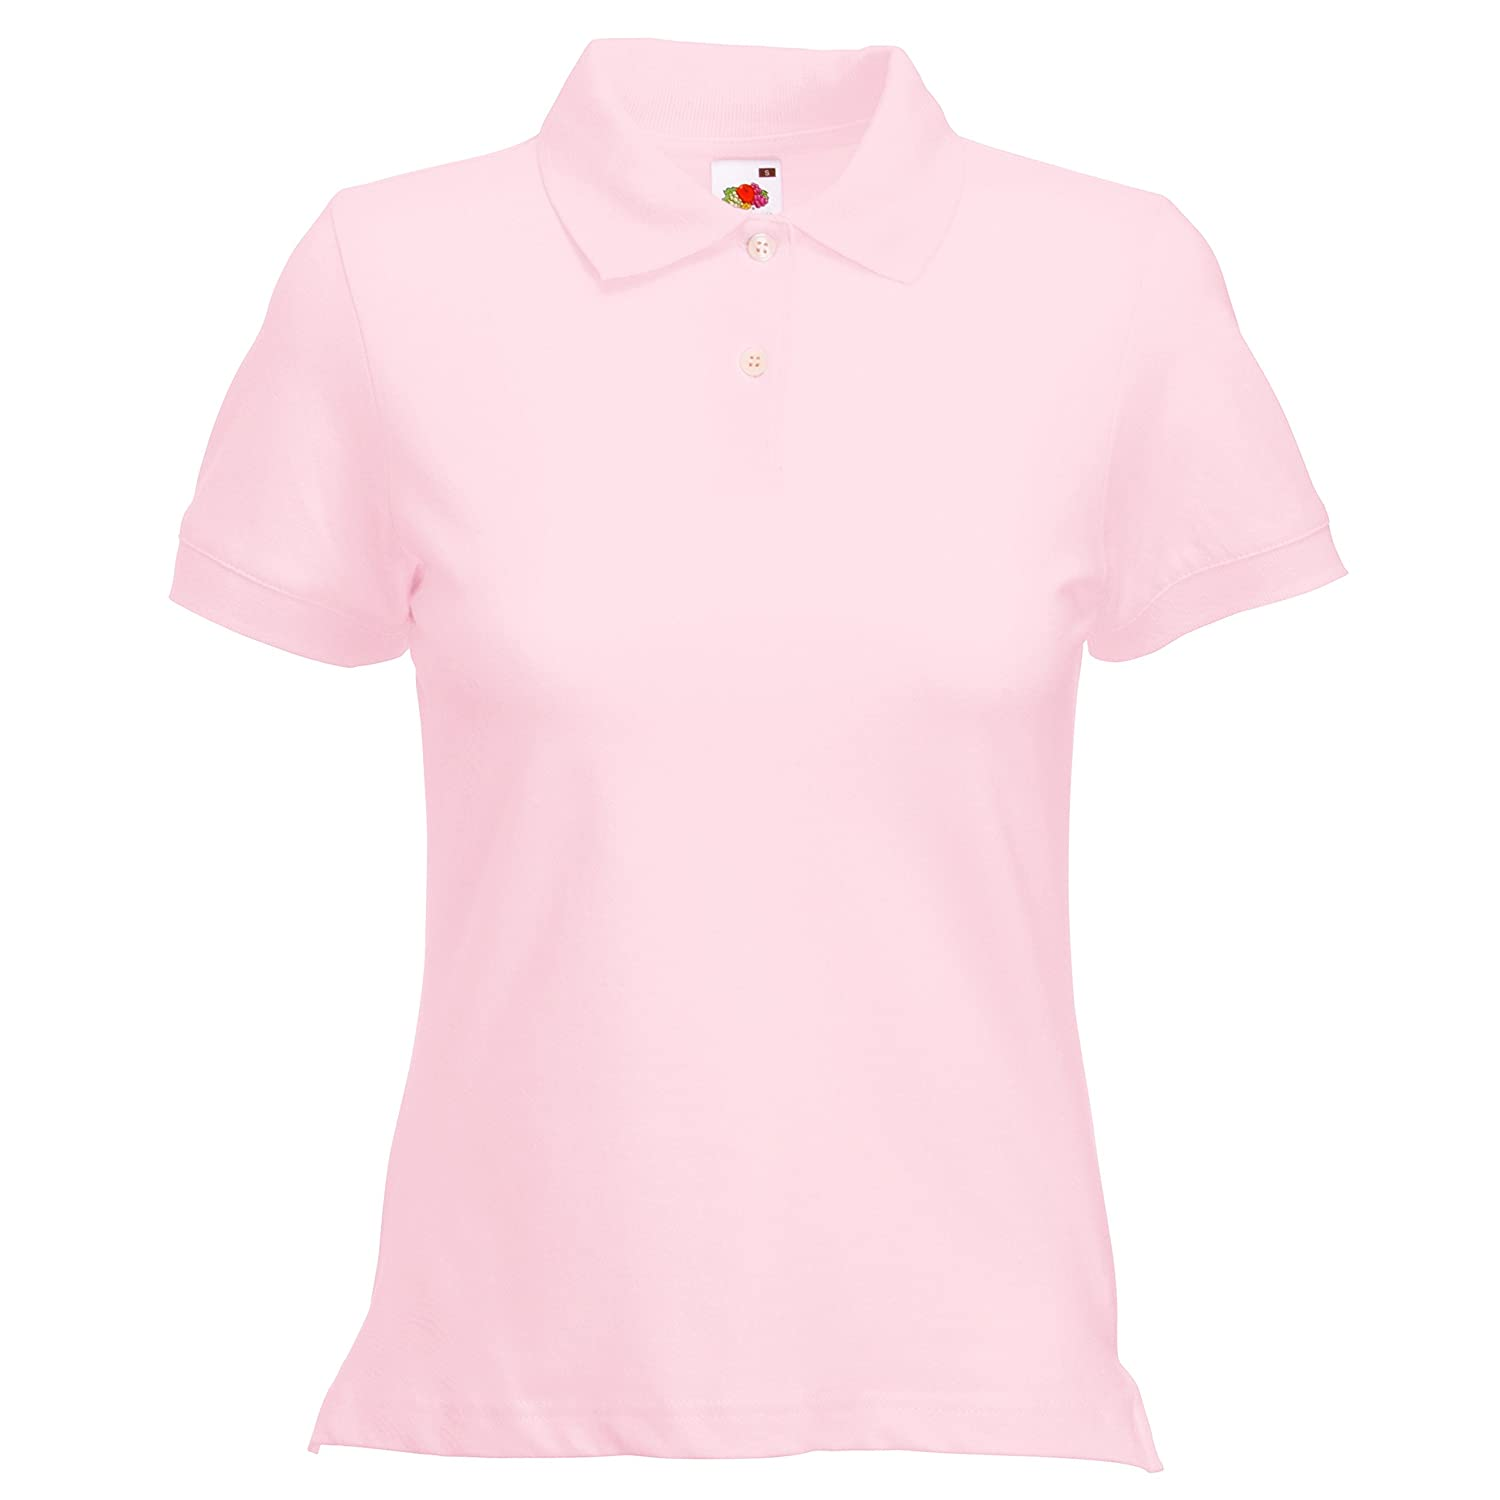 Donna M Fruit of the Loom Azzurro Cielo Polo Manica Corta